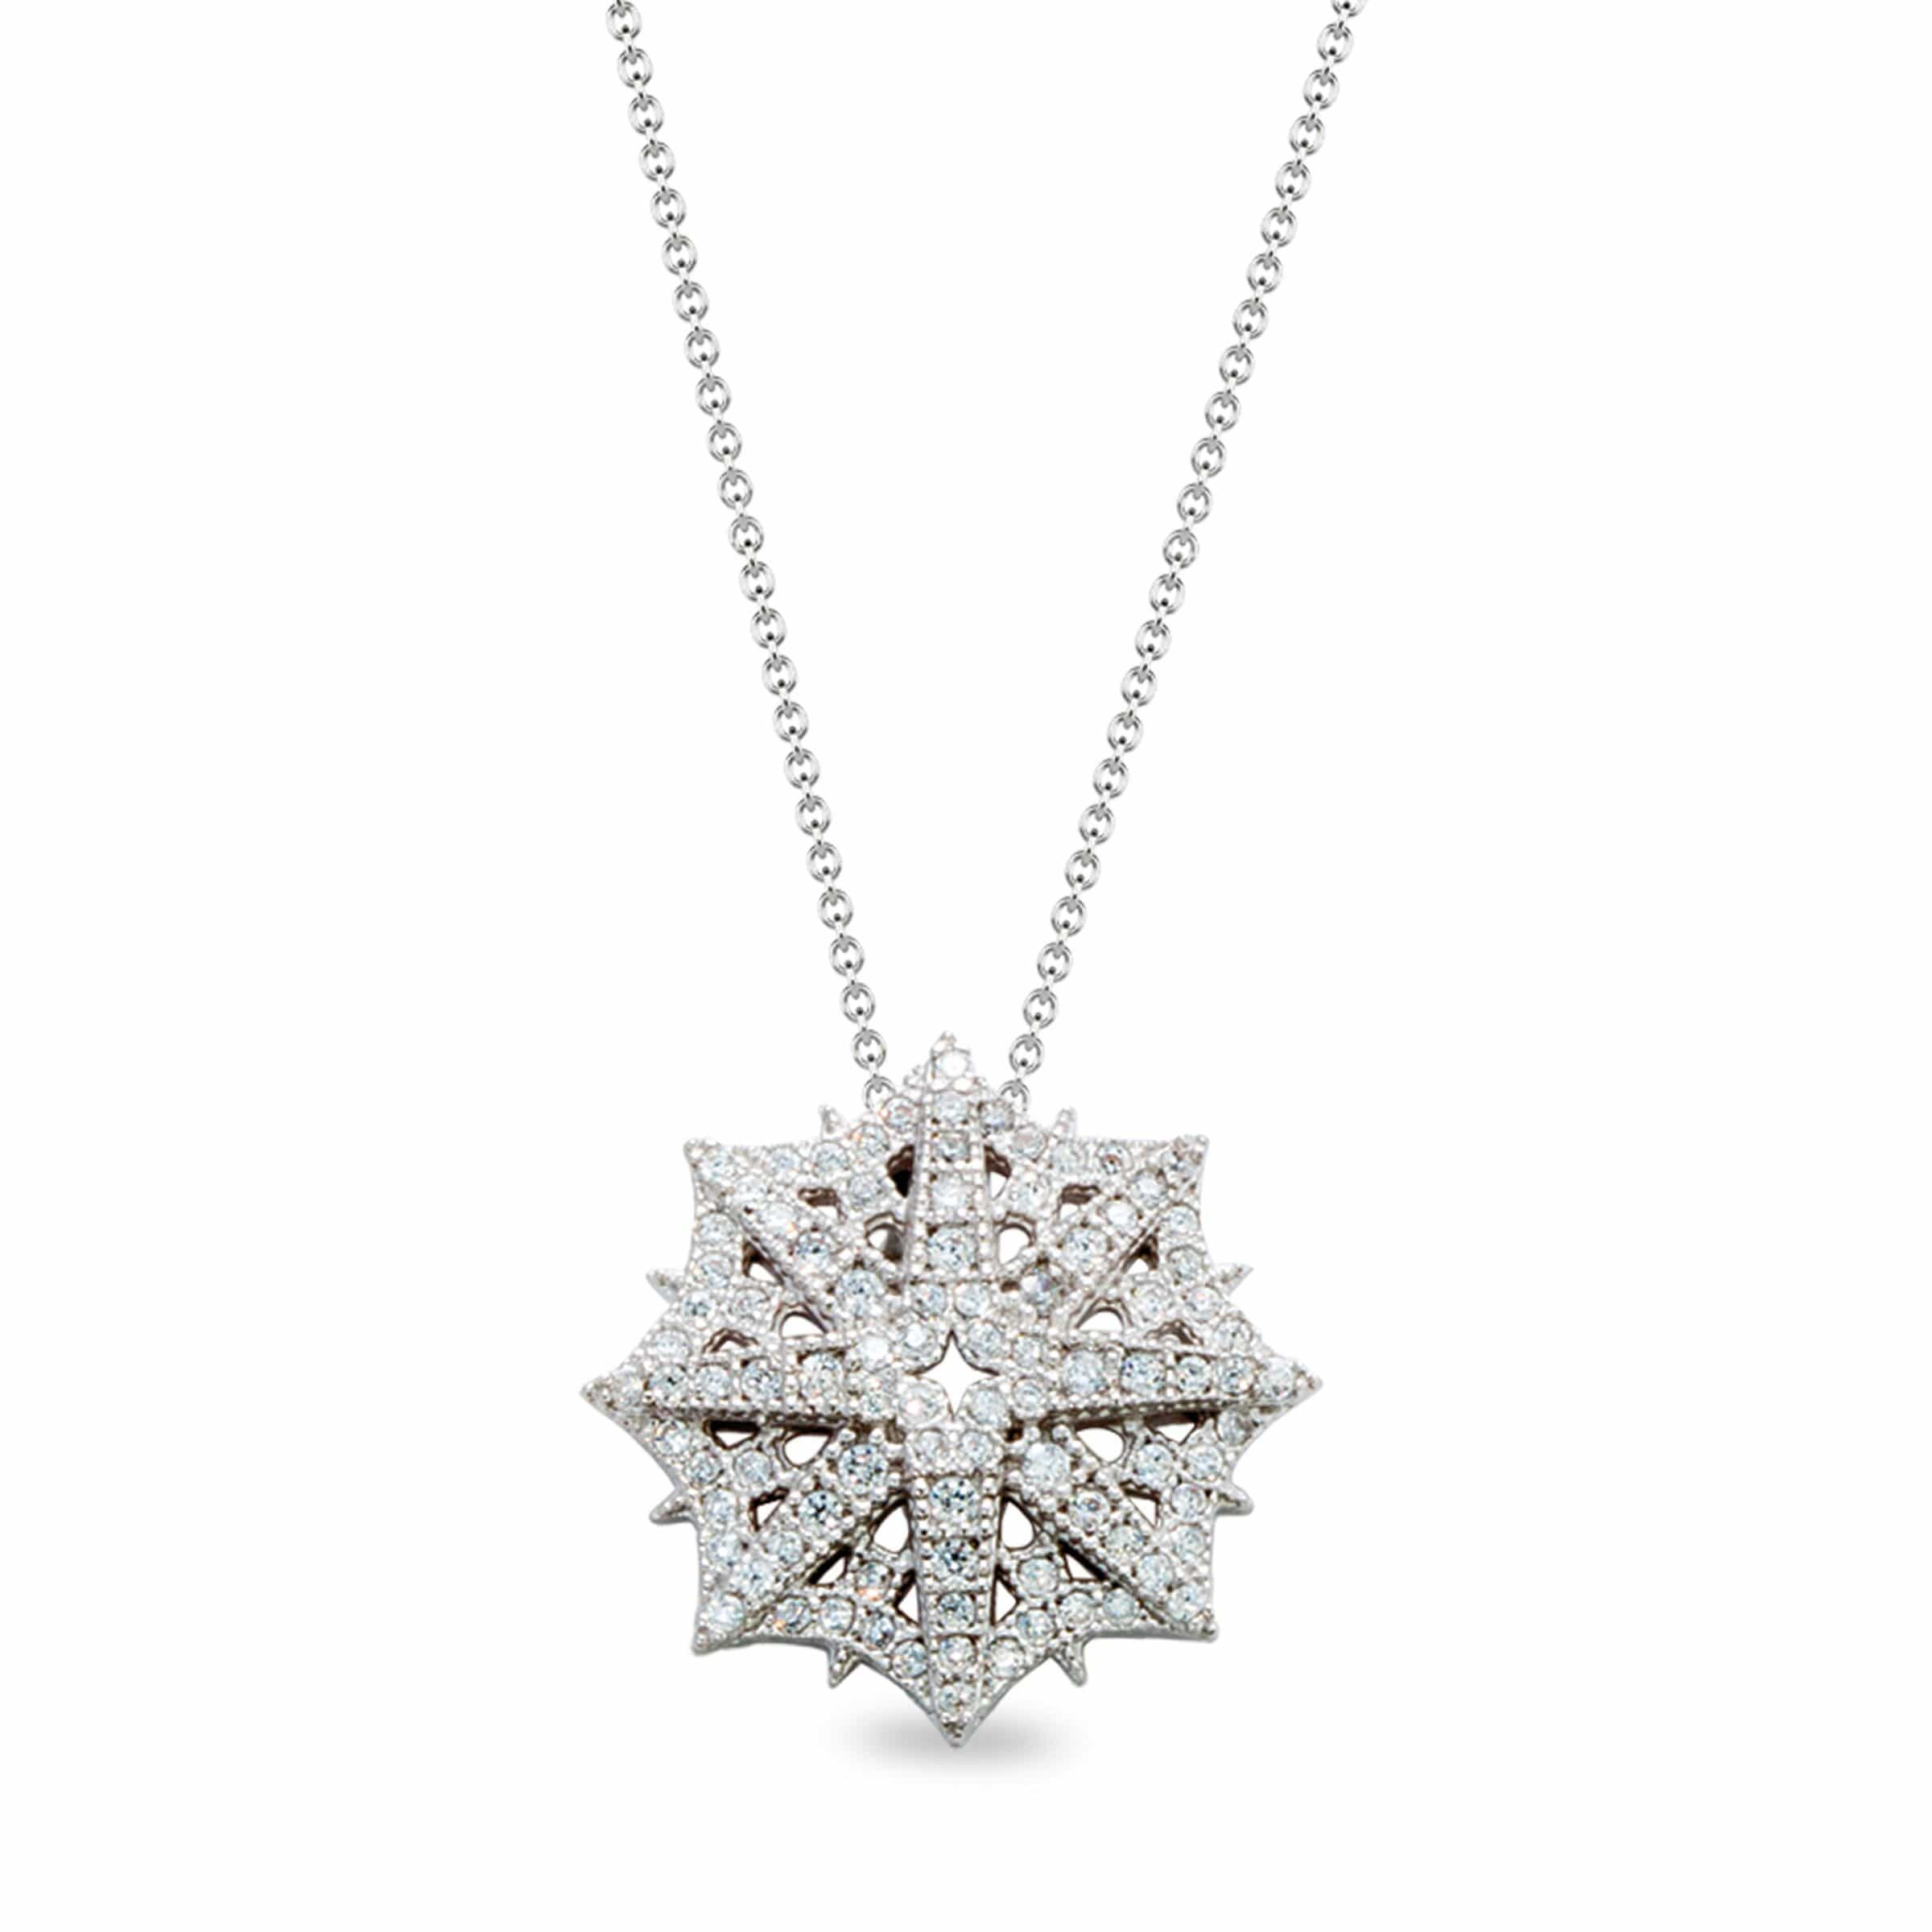 Platinum Finish Sterling Silver Micropave Star Shaped Snowflake Pendant - BL2159N-D-Kelly Waters-Renee Taylor Gallery